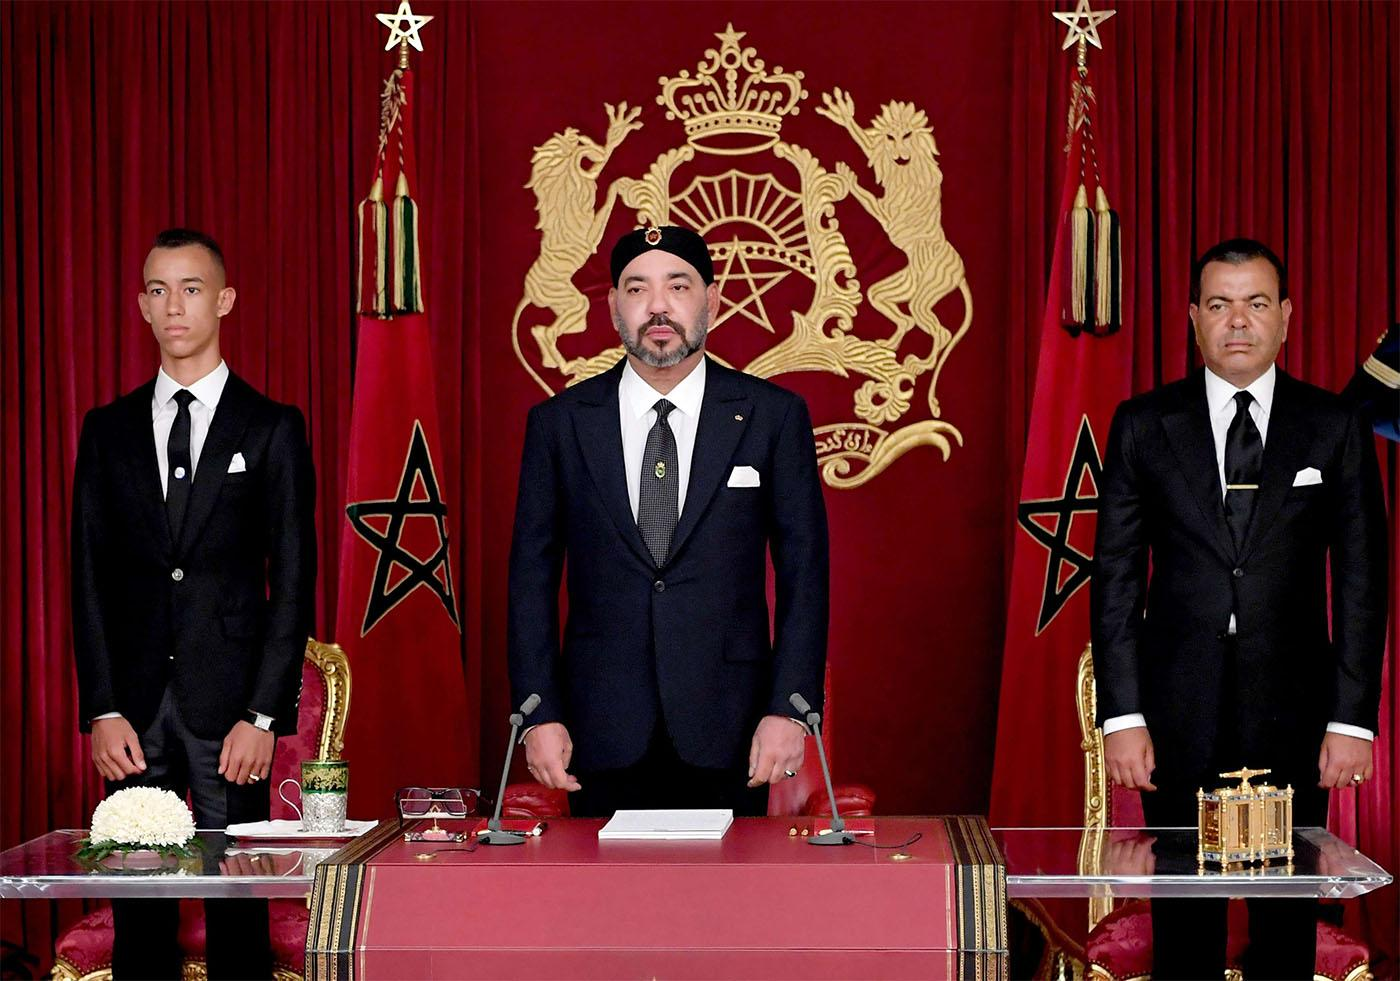 The monarch reiterated Morocco's unchanged position on Western Sahara